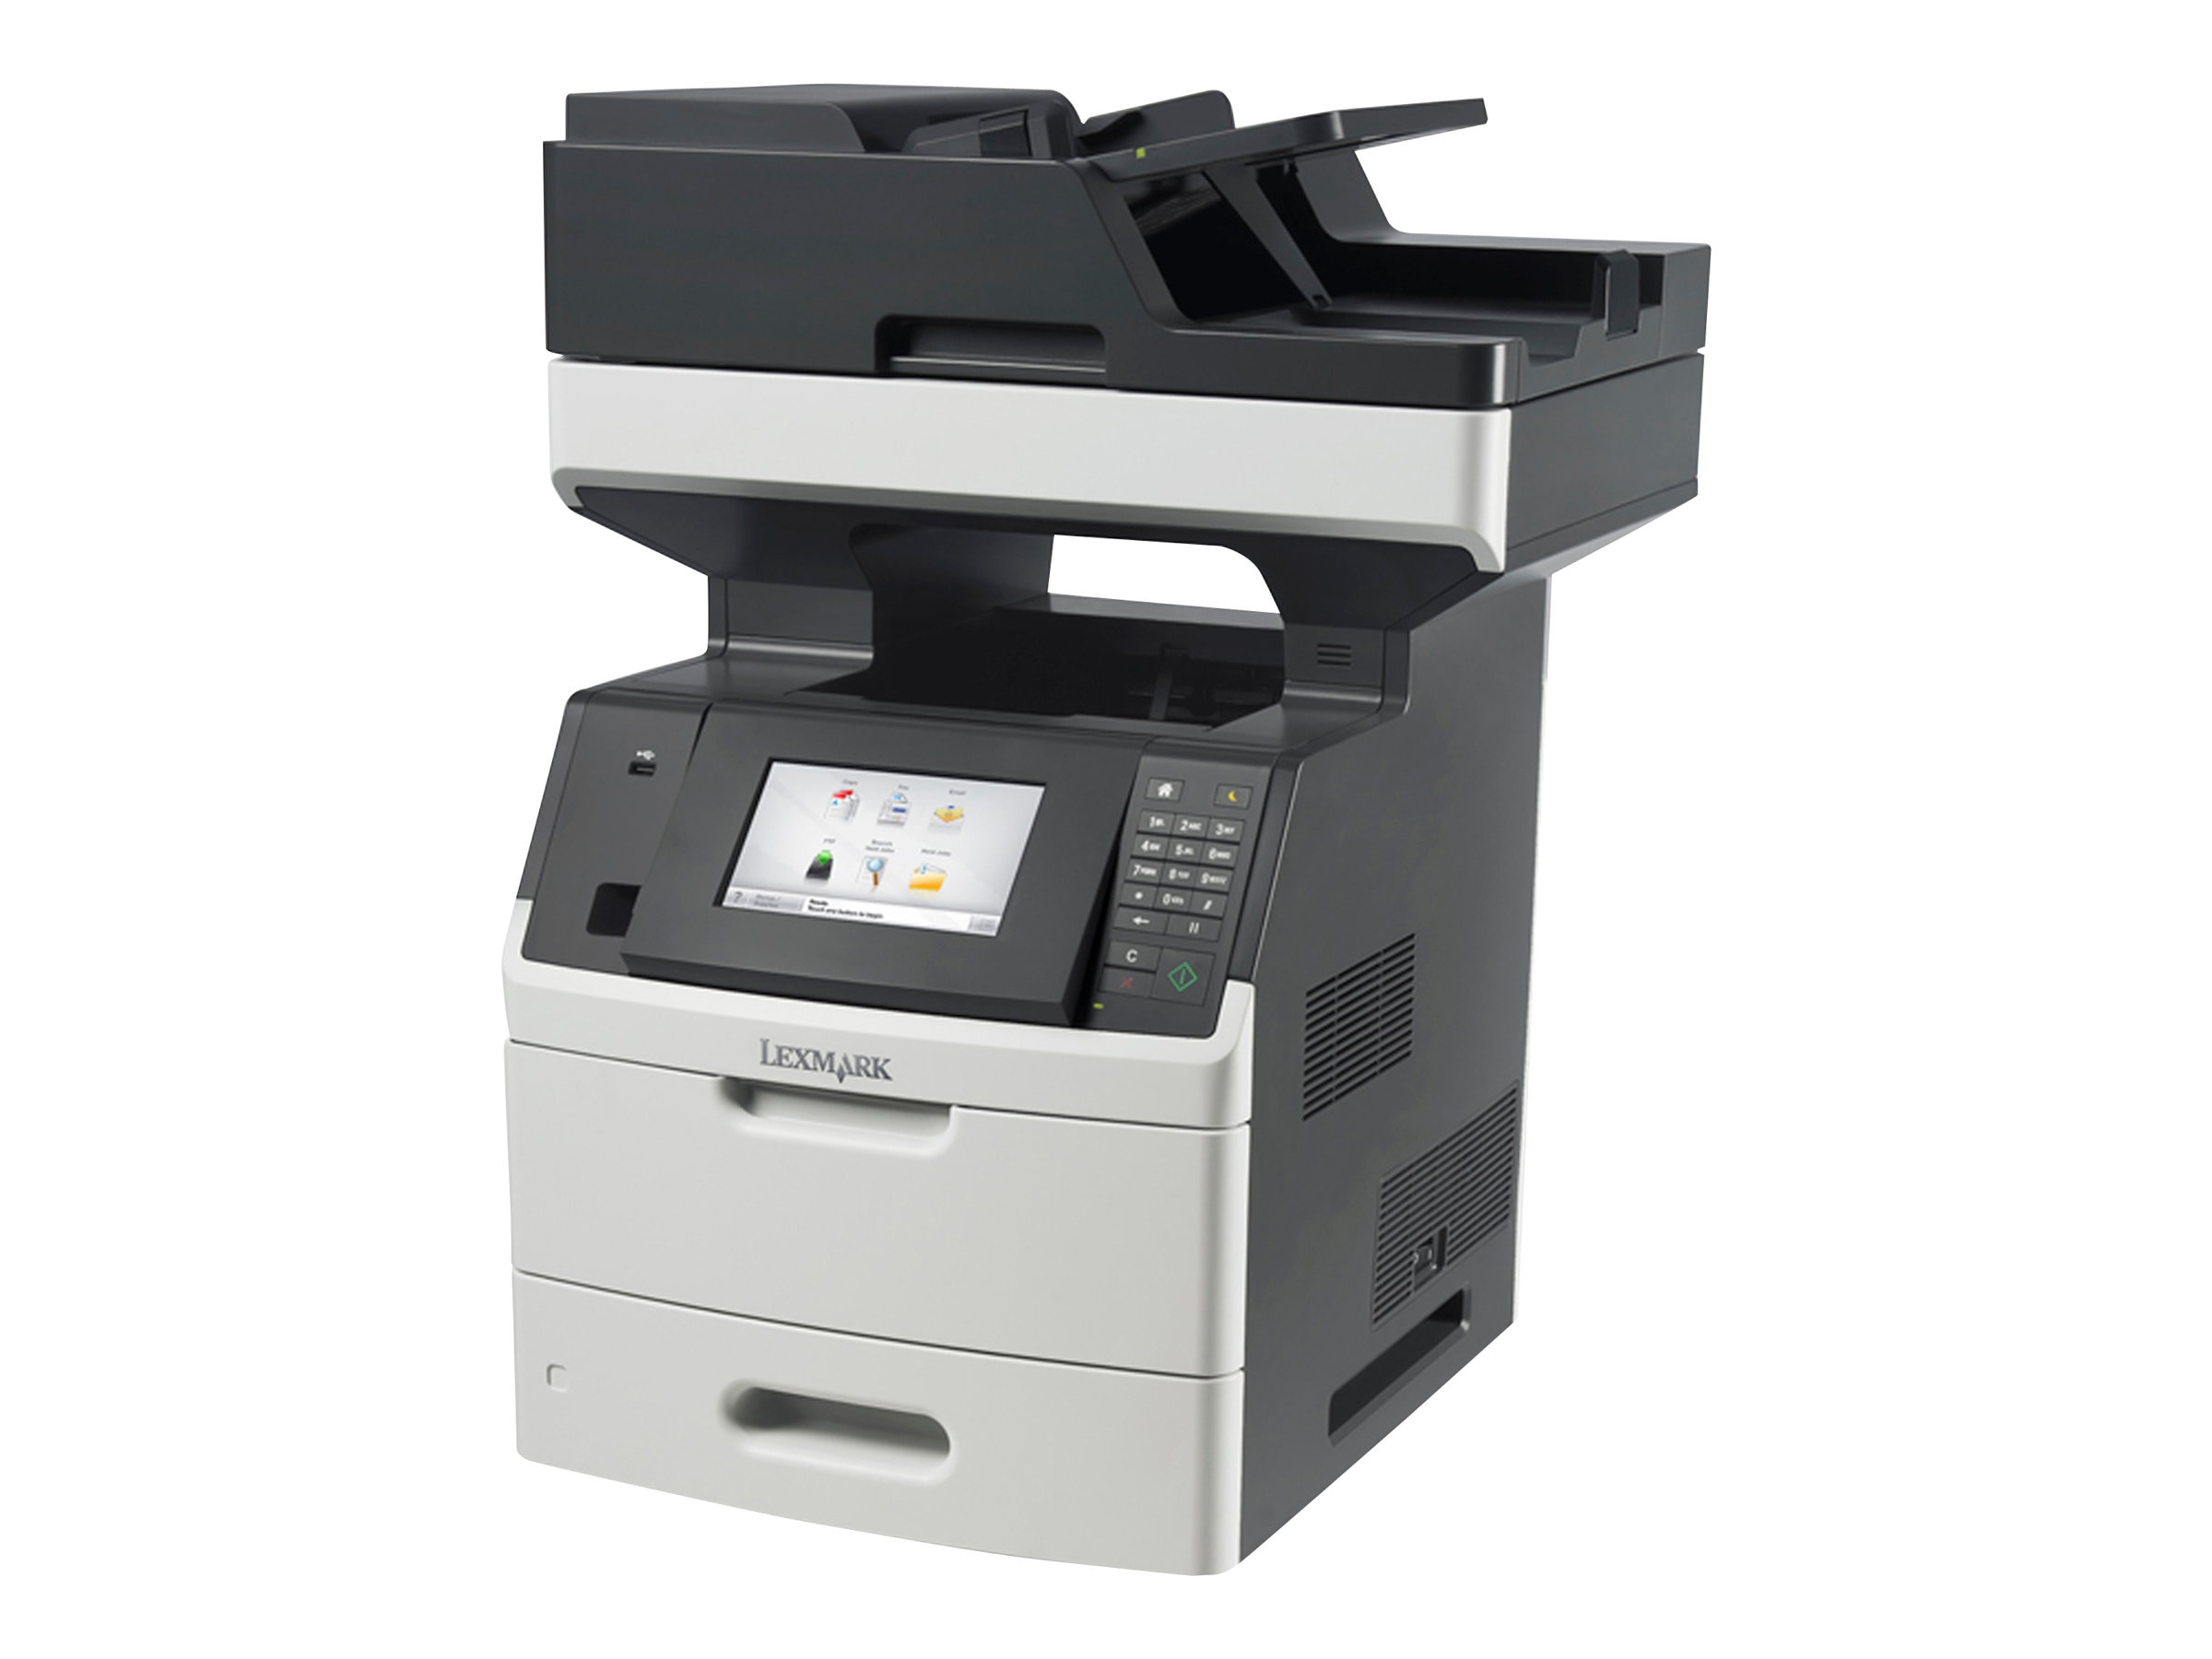 Lexmark MX710de Monochrome Laser Multifunction Printer, 24T7401, 14908474, MultiFunction - Laser (monochrome)